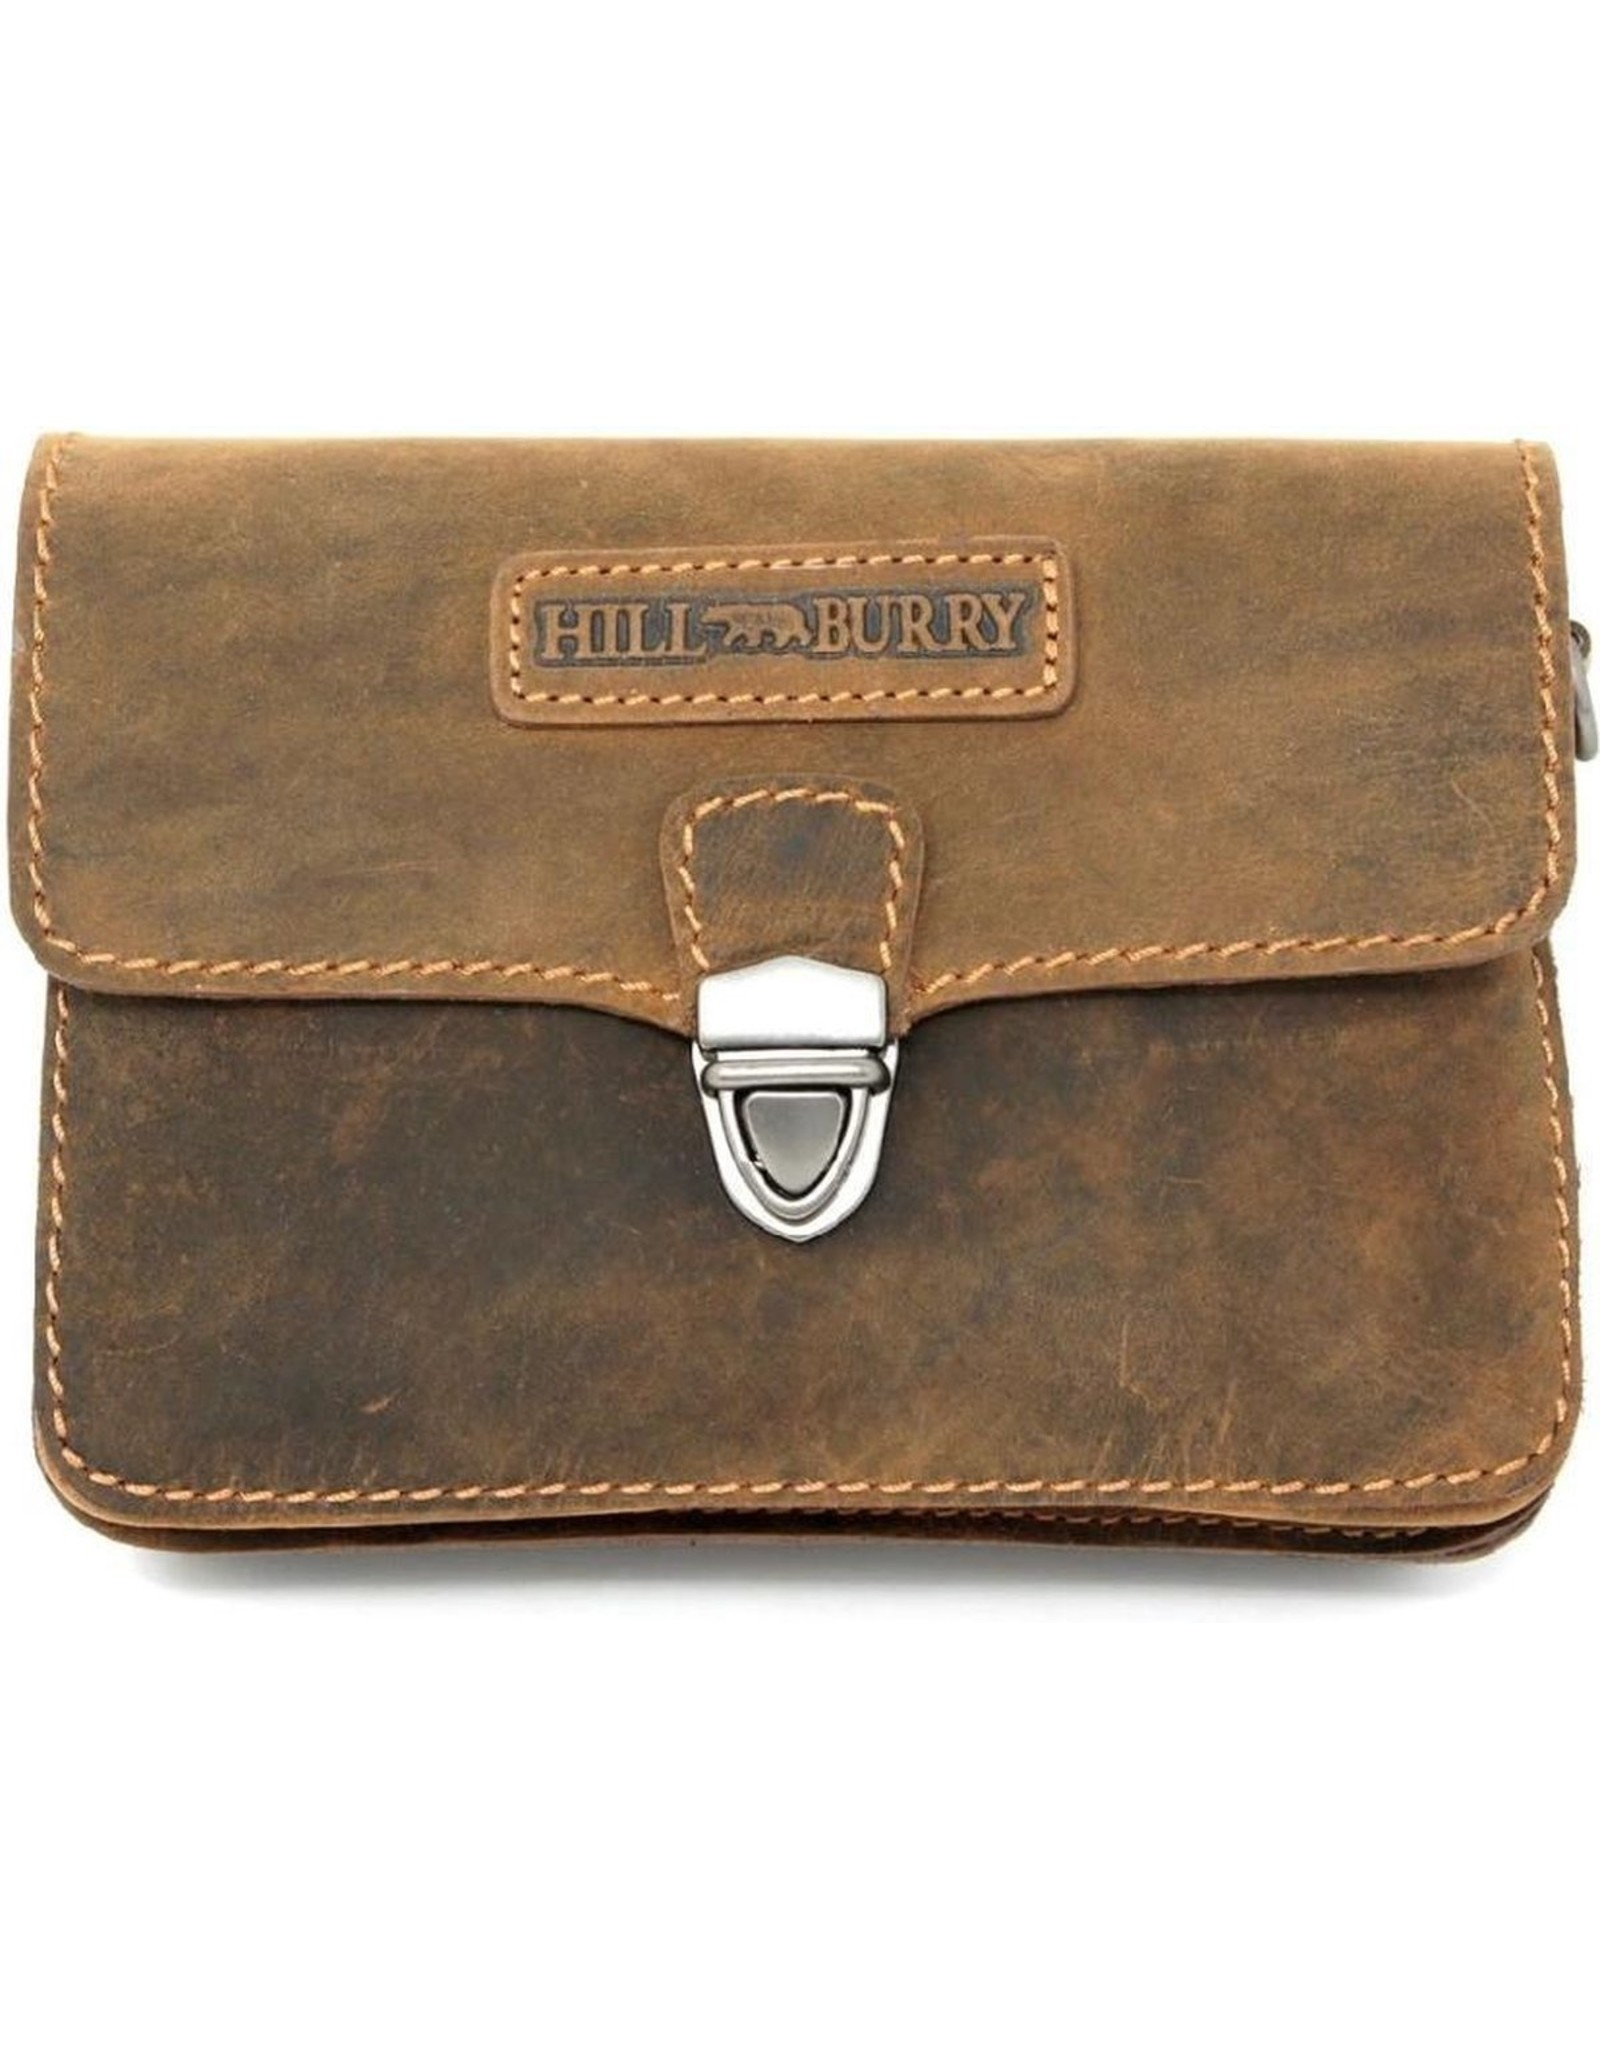 HillBurry Leather Festival bags, waist bags and belt bags - HillBurry Leather Shoulder bag belt bag